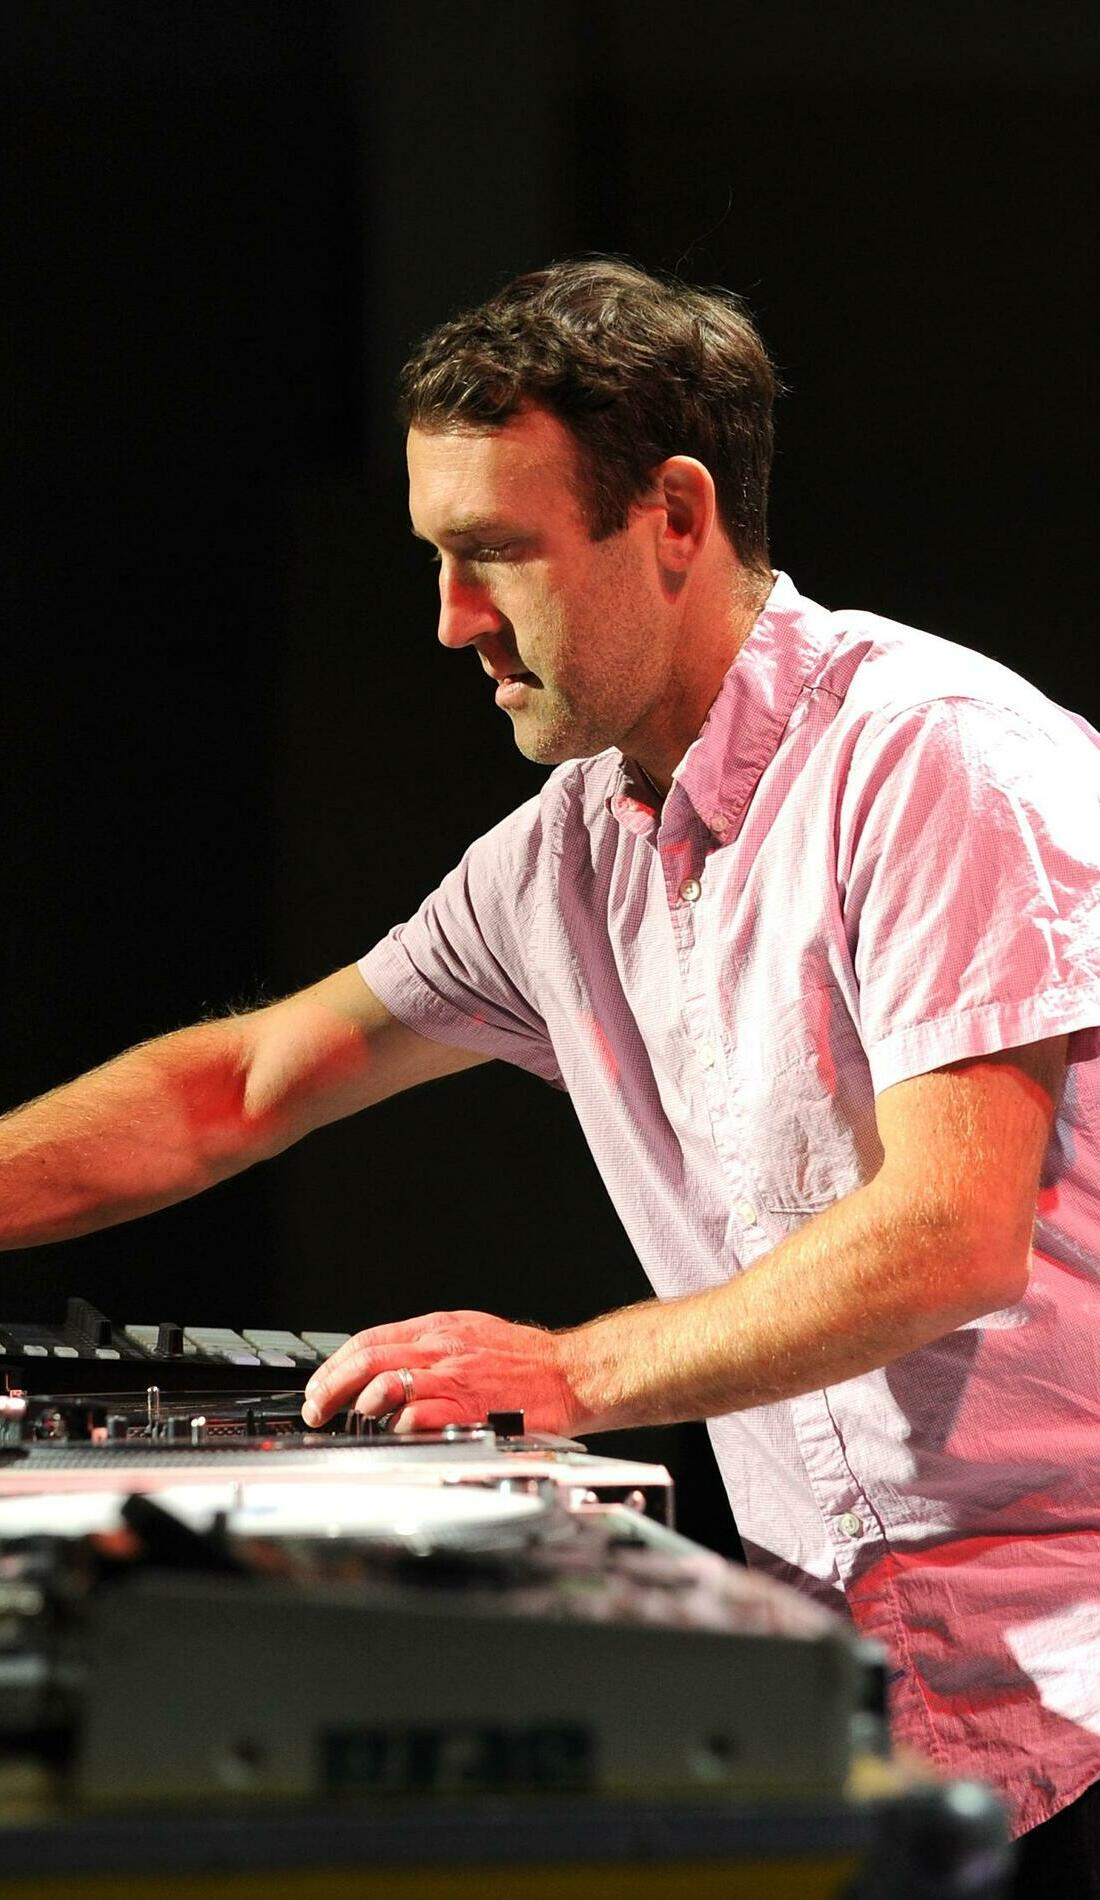 A RJD2 live event